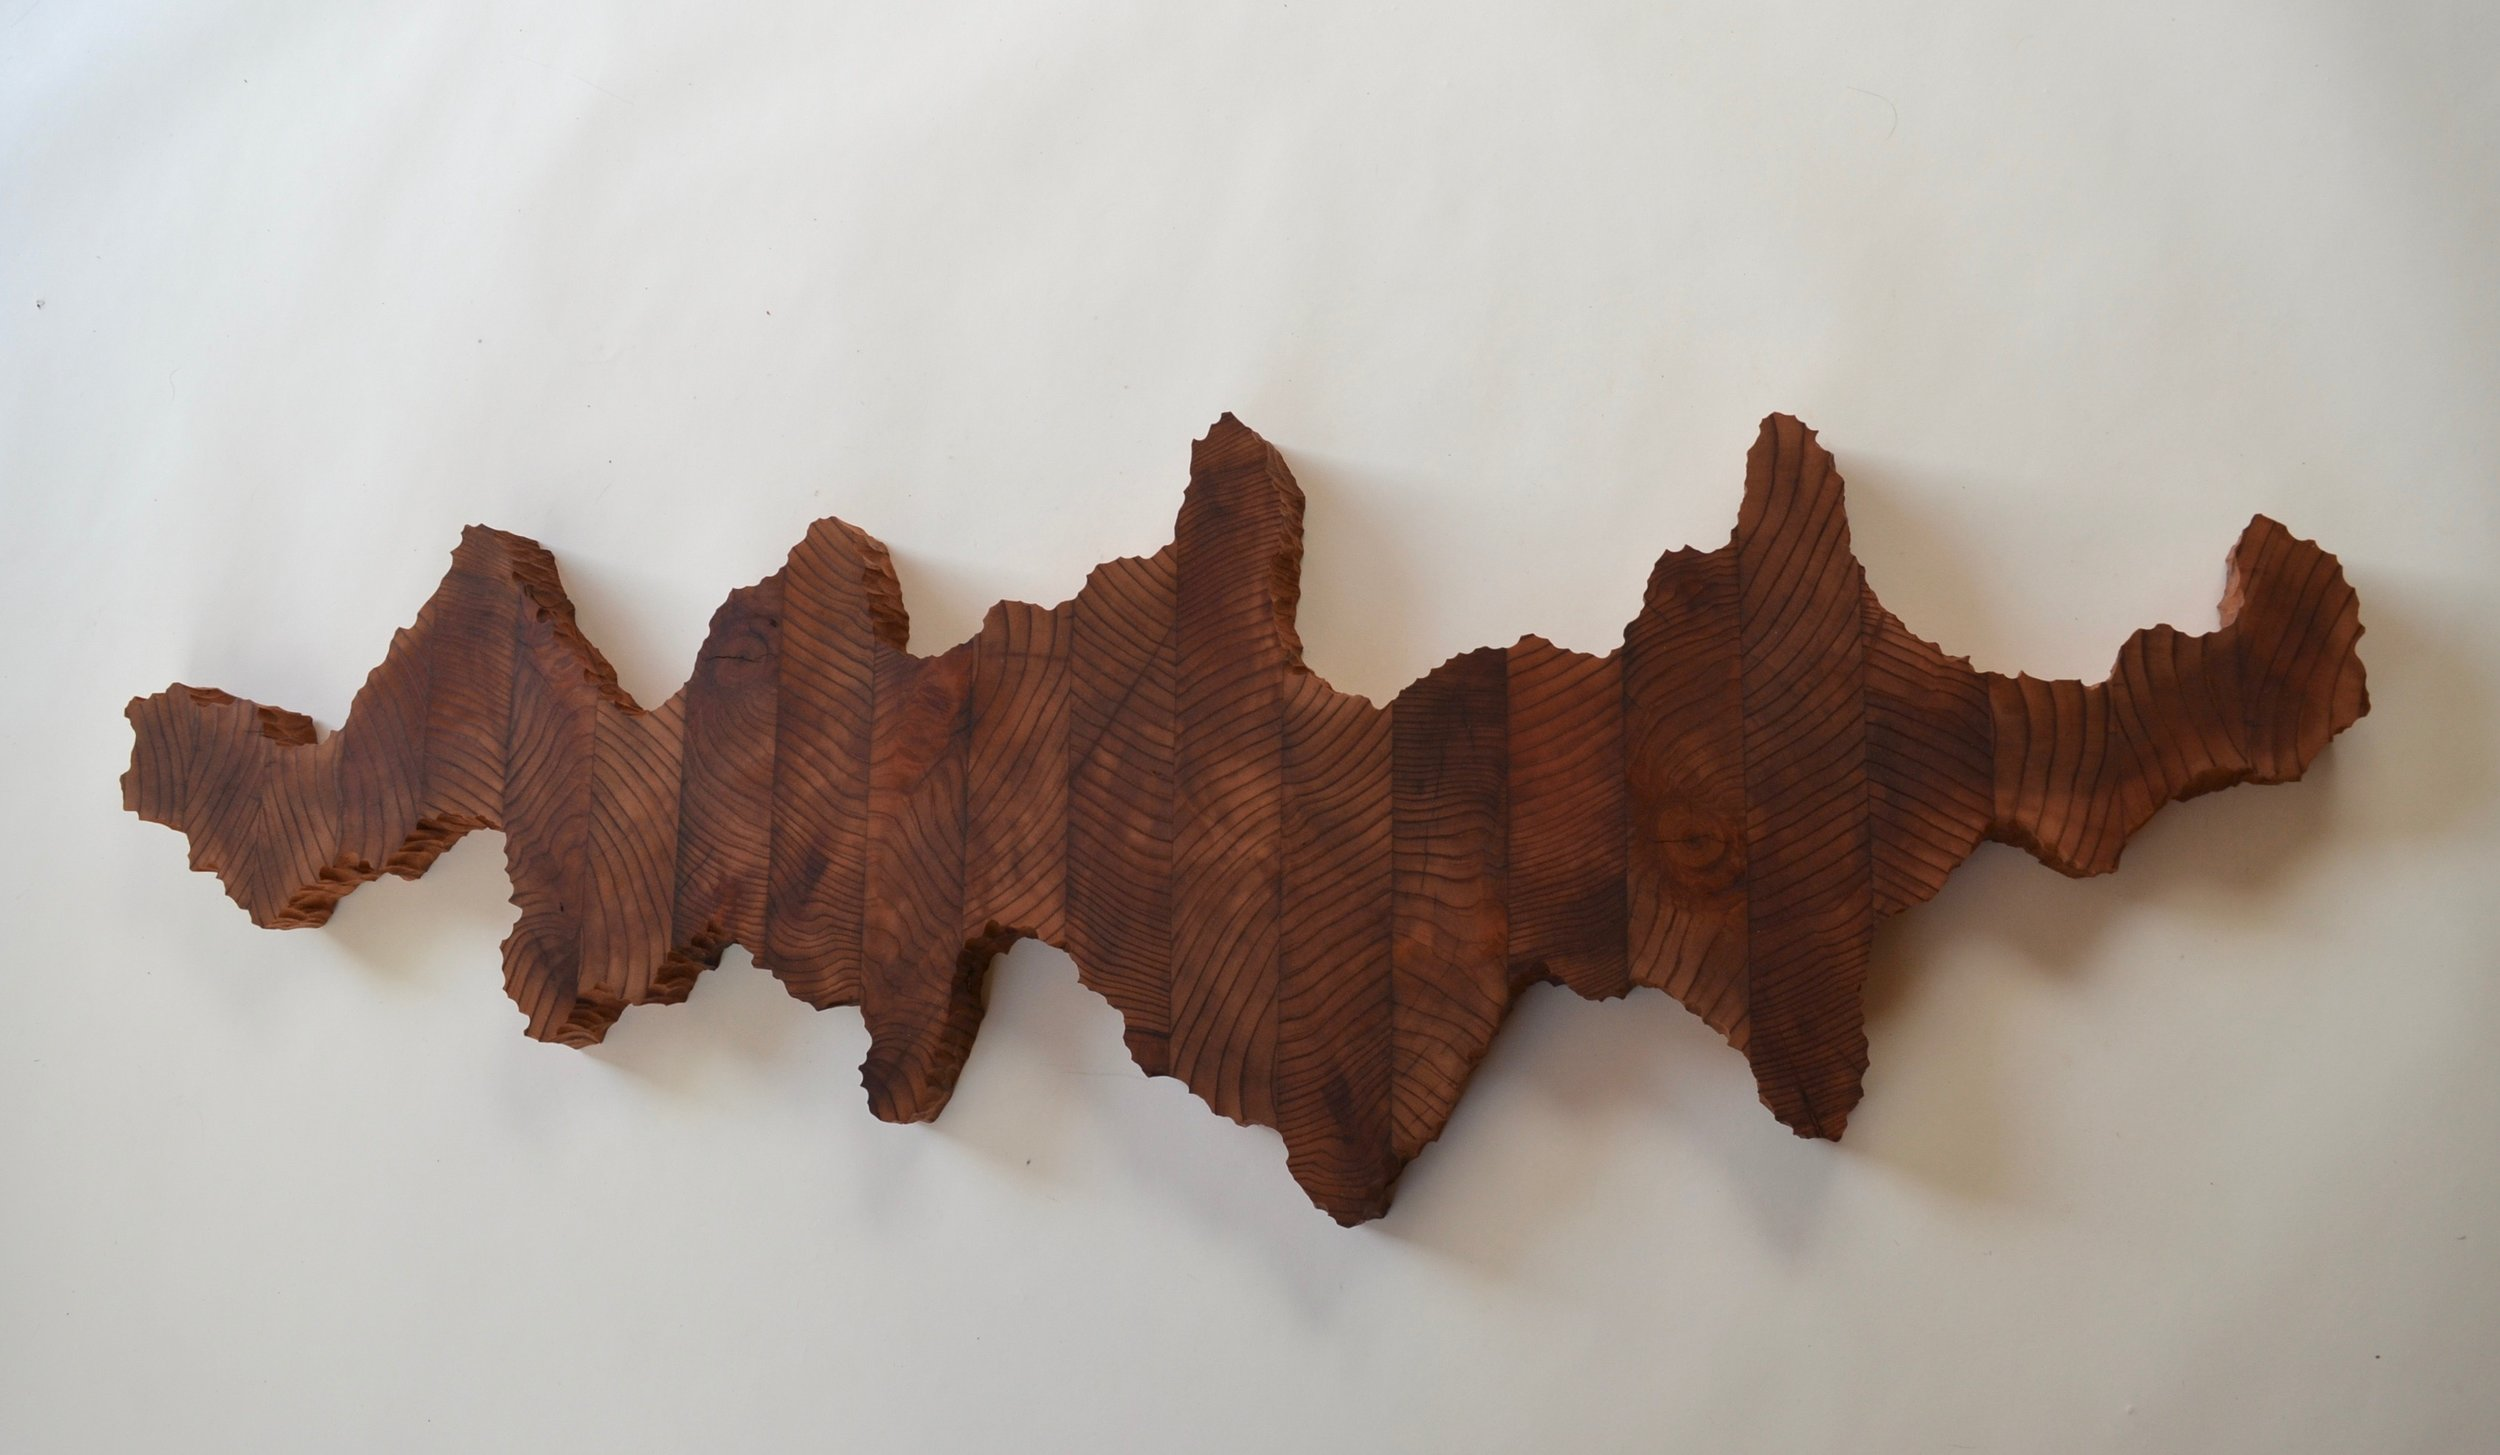 Around the World, 17x48x2, reclaimed redwood, at SFMOMA Artist Gallery